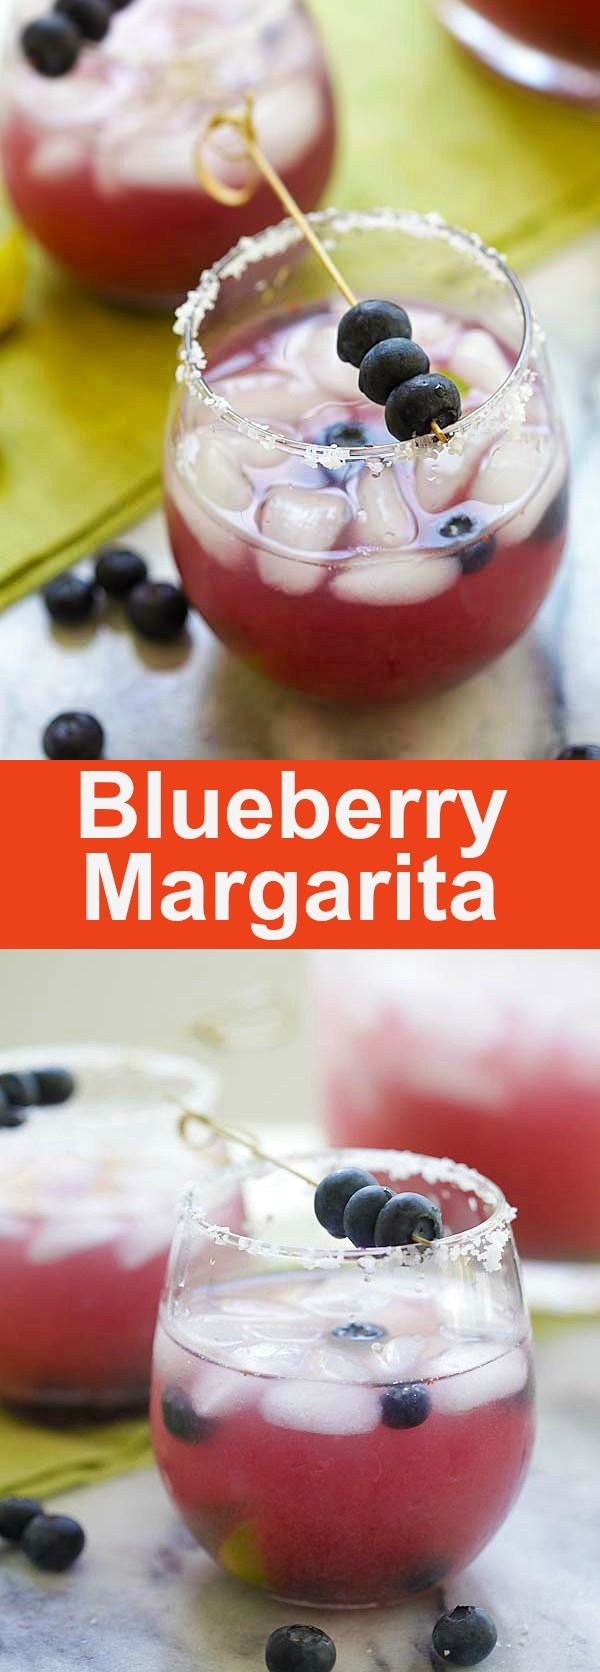 Blueberry Margarita – the booziest blueberry margarita recipe with silver tequila and blueberries. Party is on with this quick and easy recipe | rasamalaysia.com